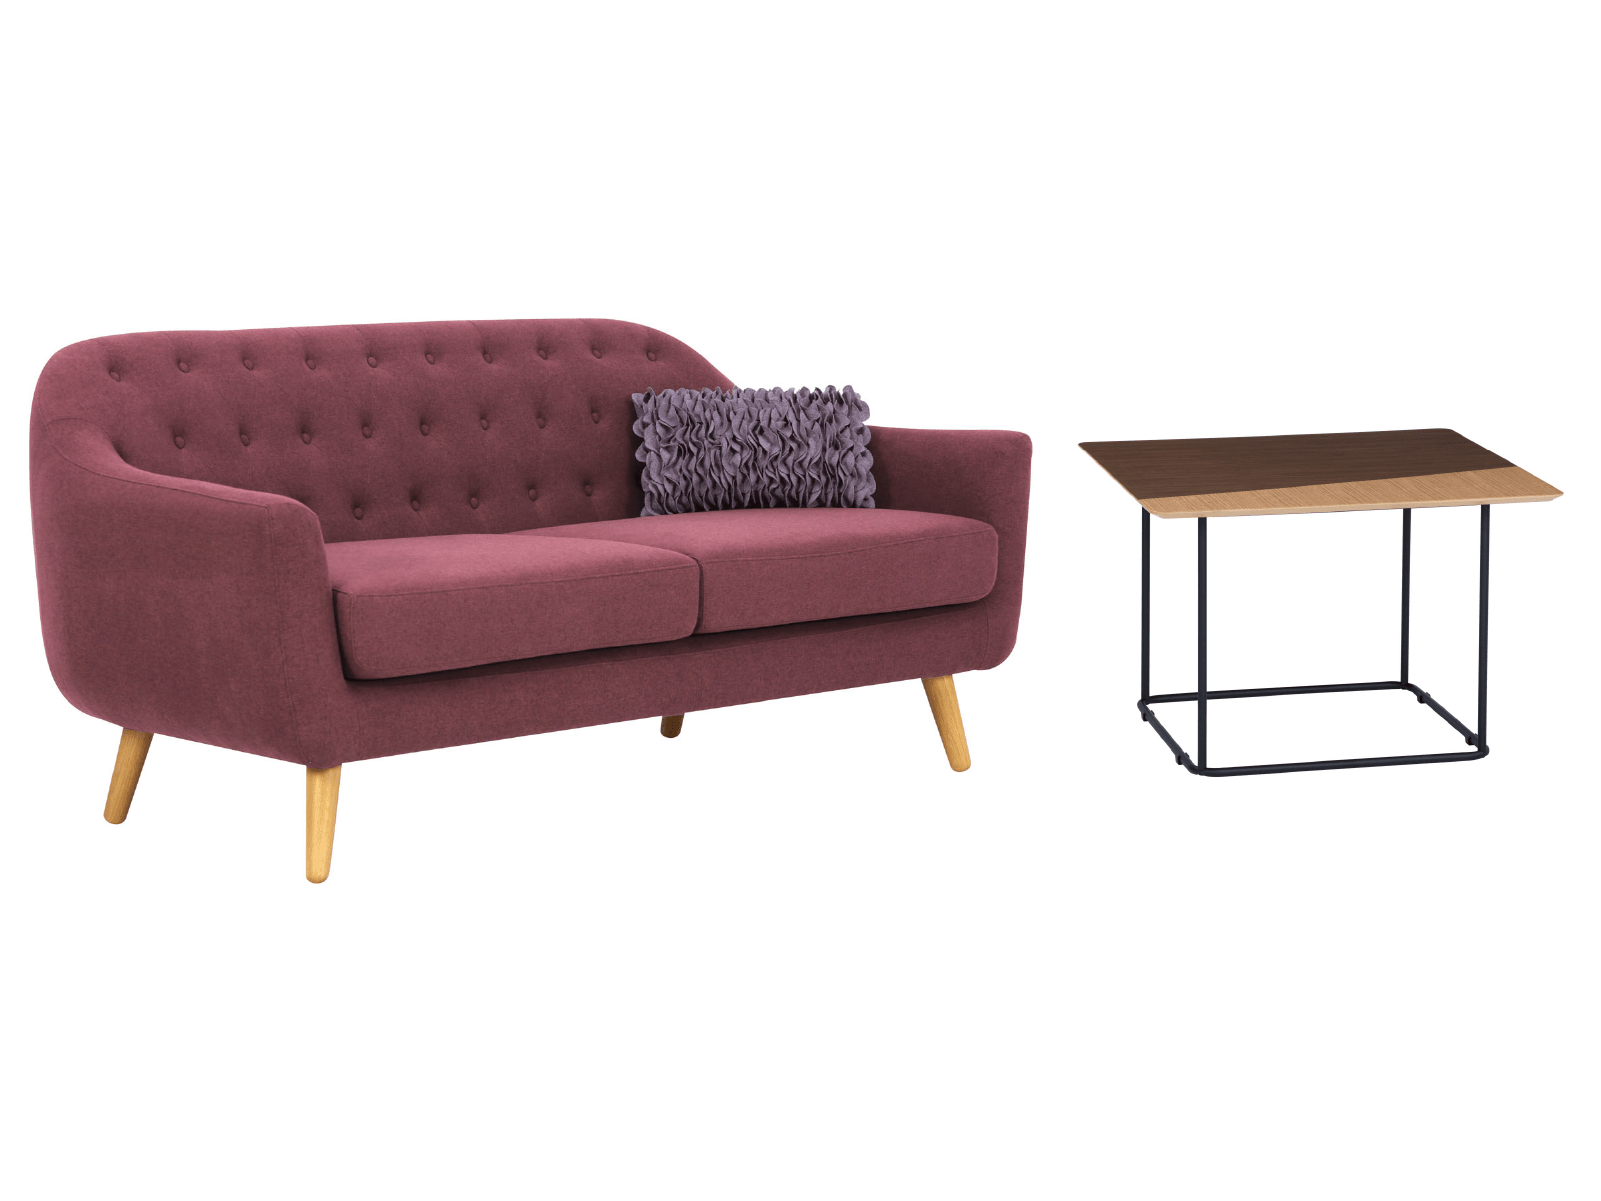 Senku 3 Seater With Coffee Table Set (Orchid)@2x